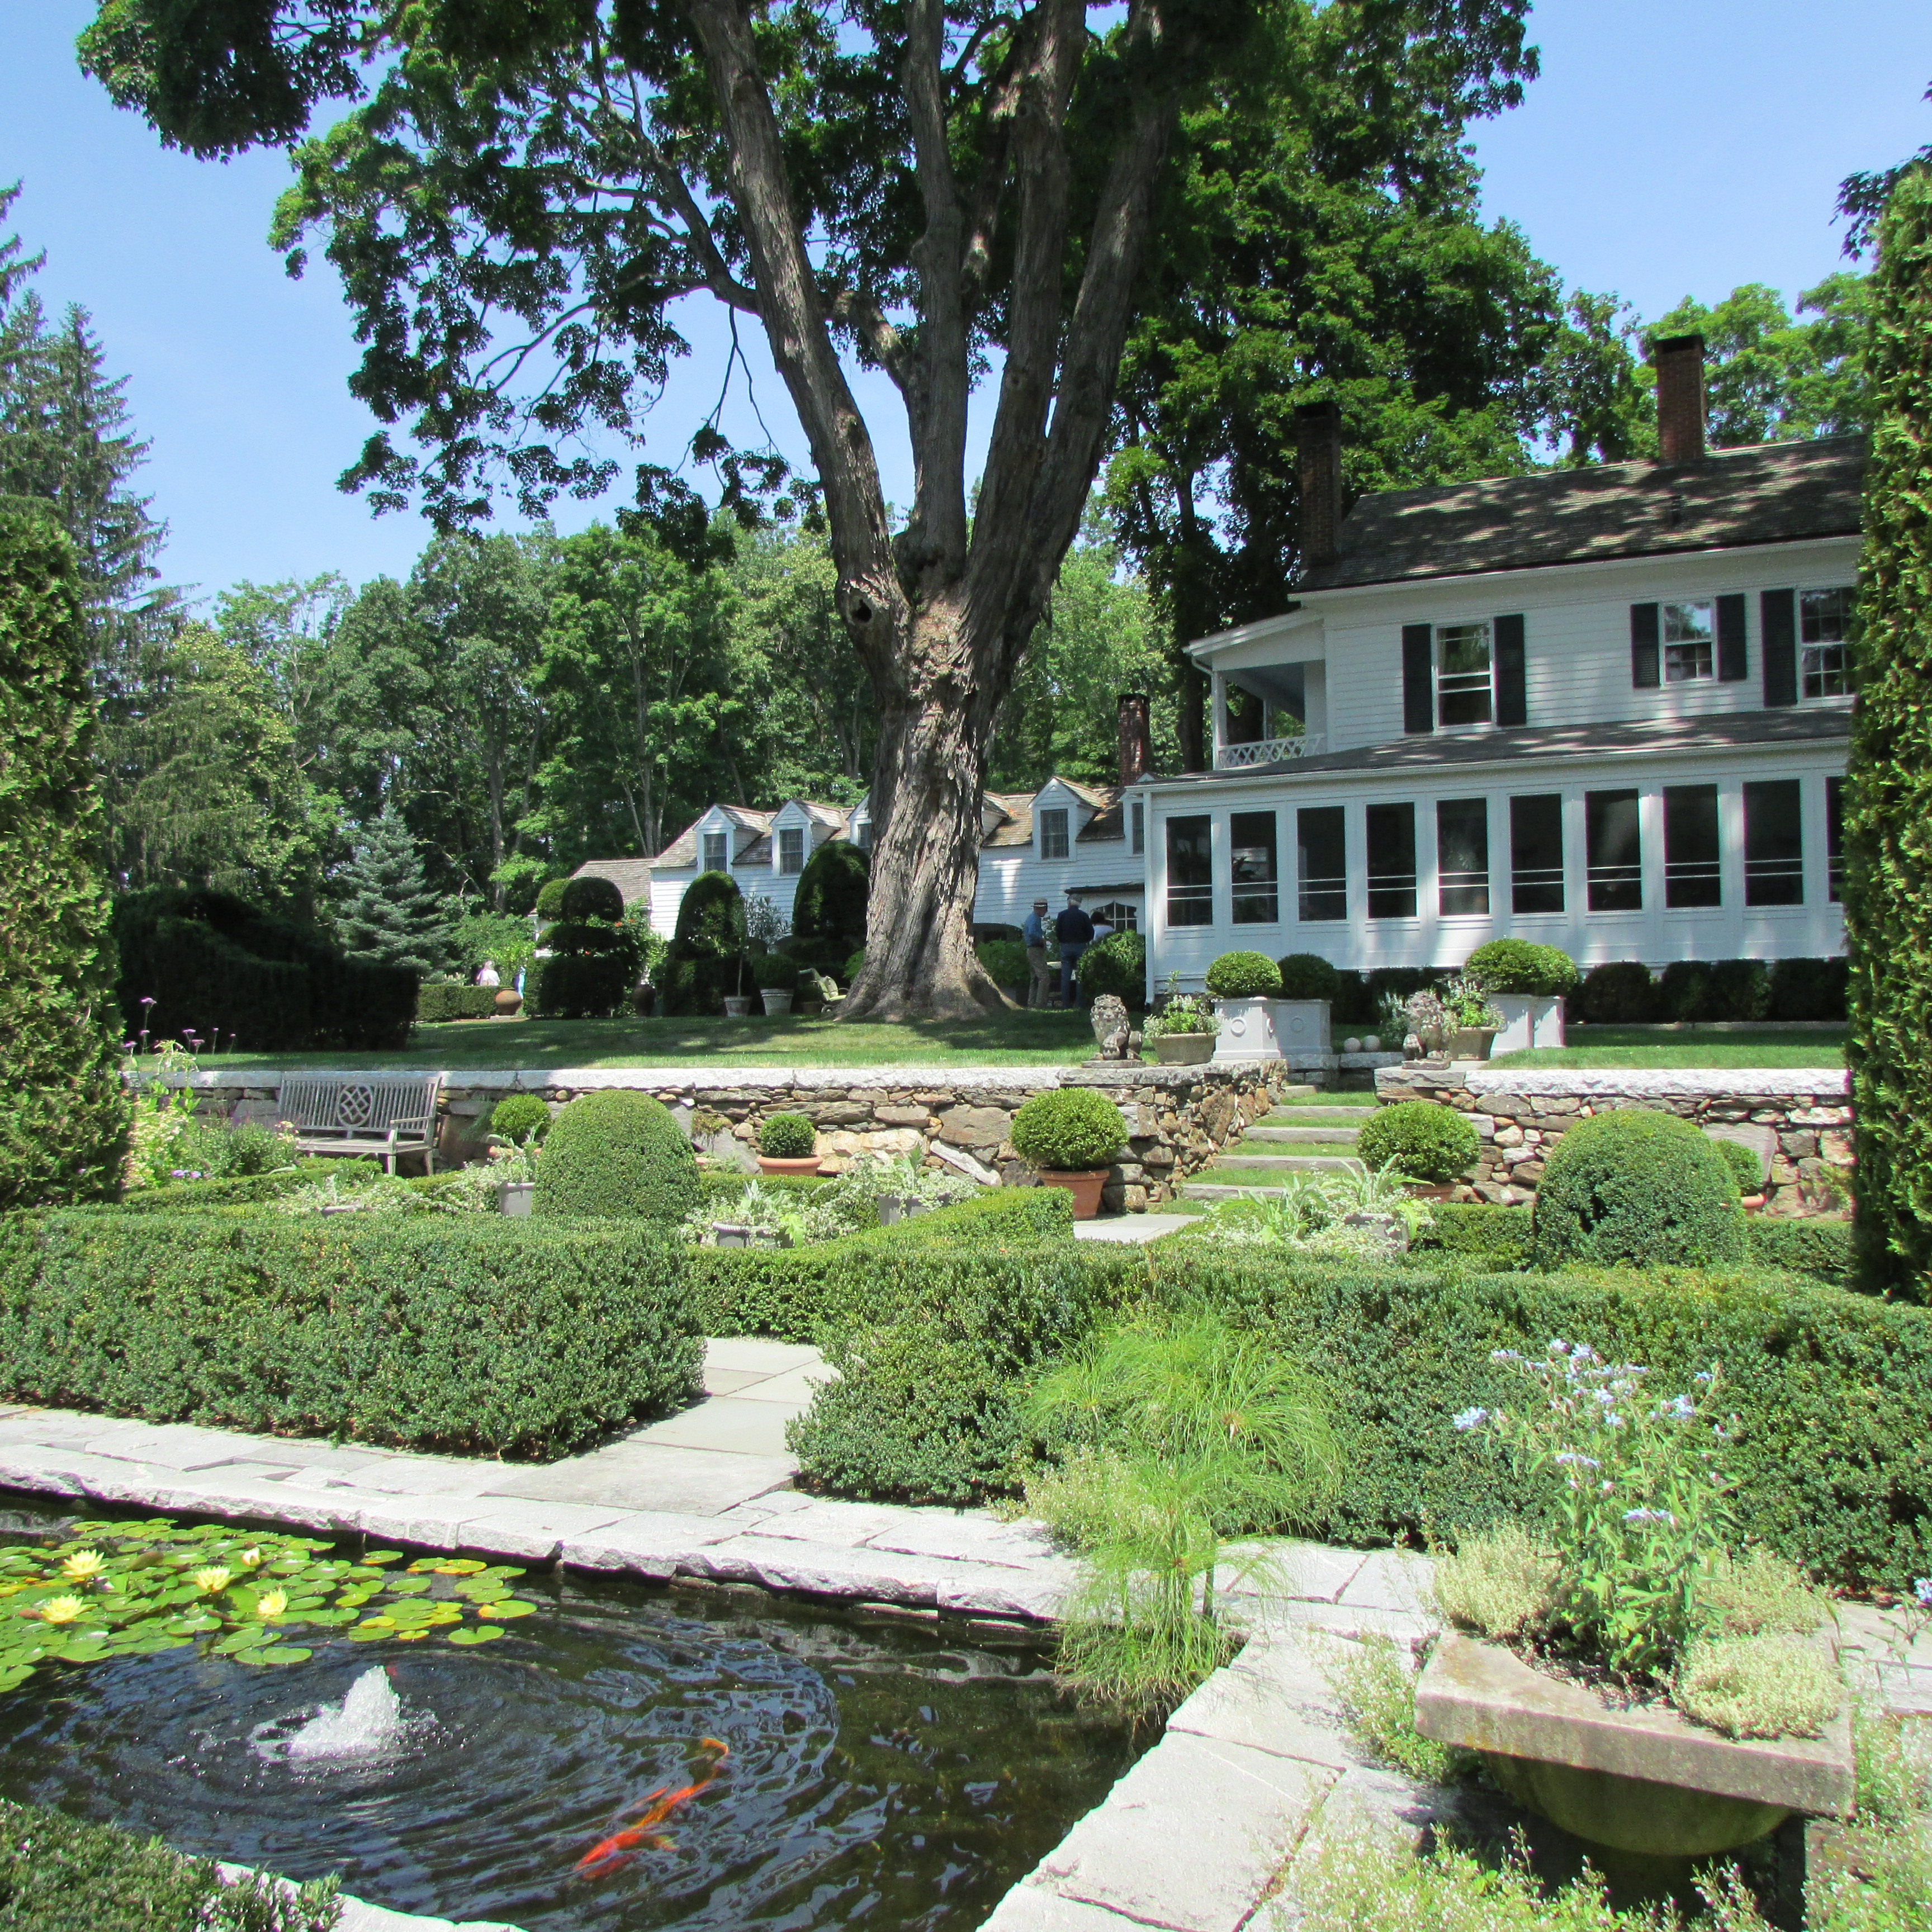 Home On Gardent Ct: Visiting Bunny Williams And John Rosselli's Garden In